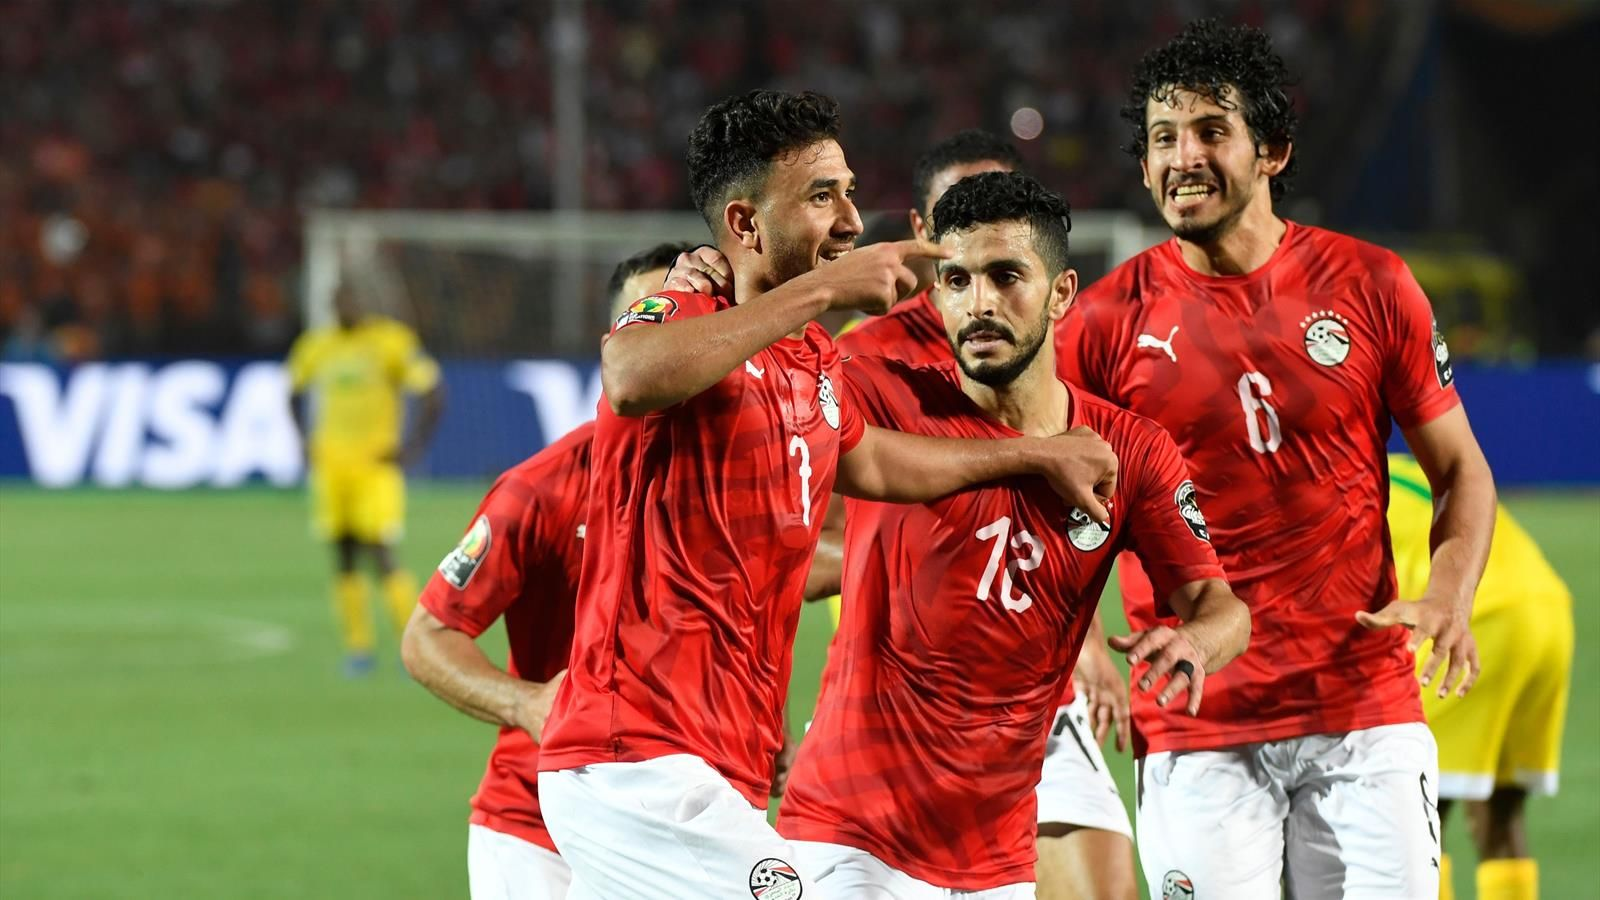 Kenya hold Egypt to a 1-1 draw in first AFCON qualifying game at Alexandre